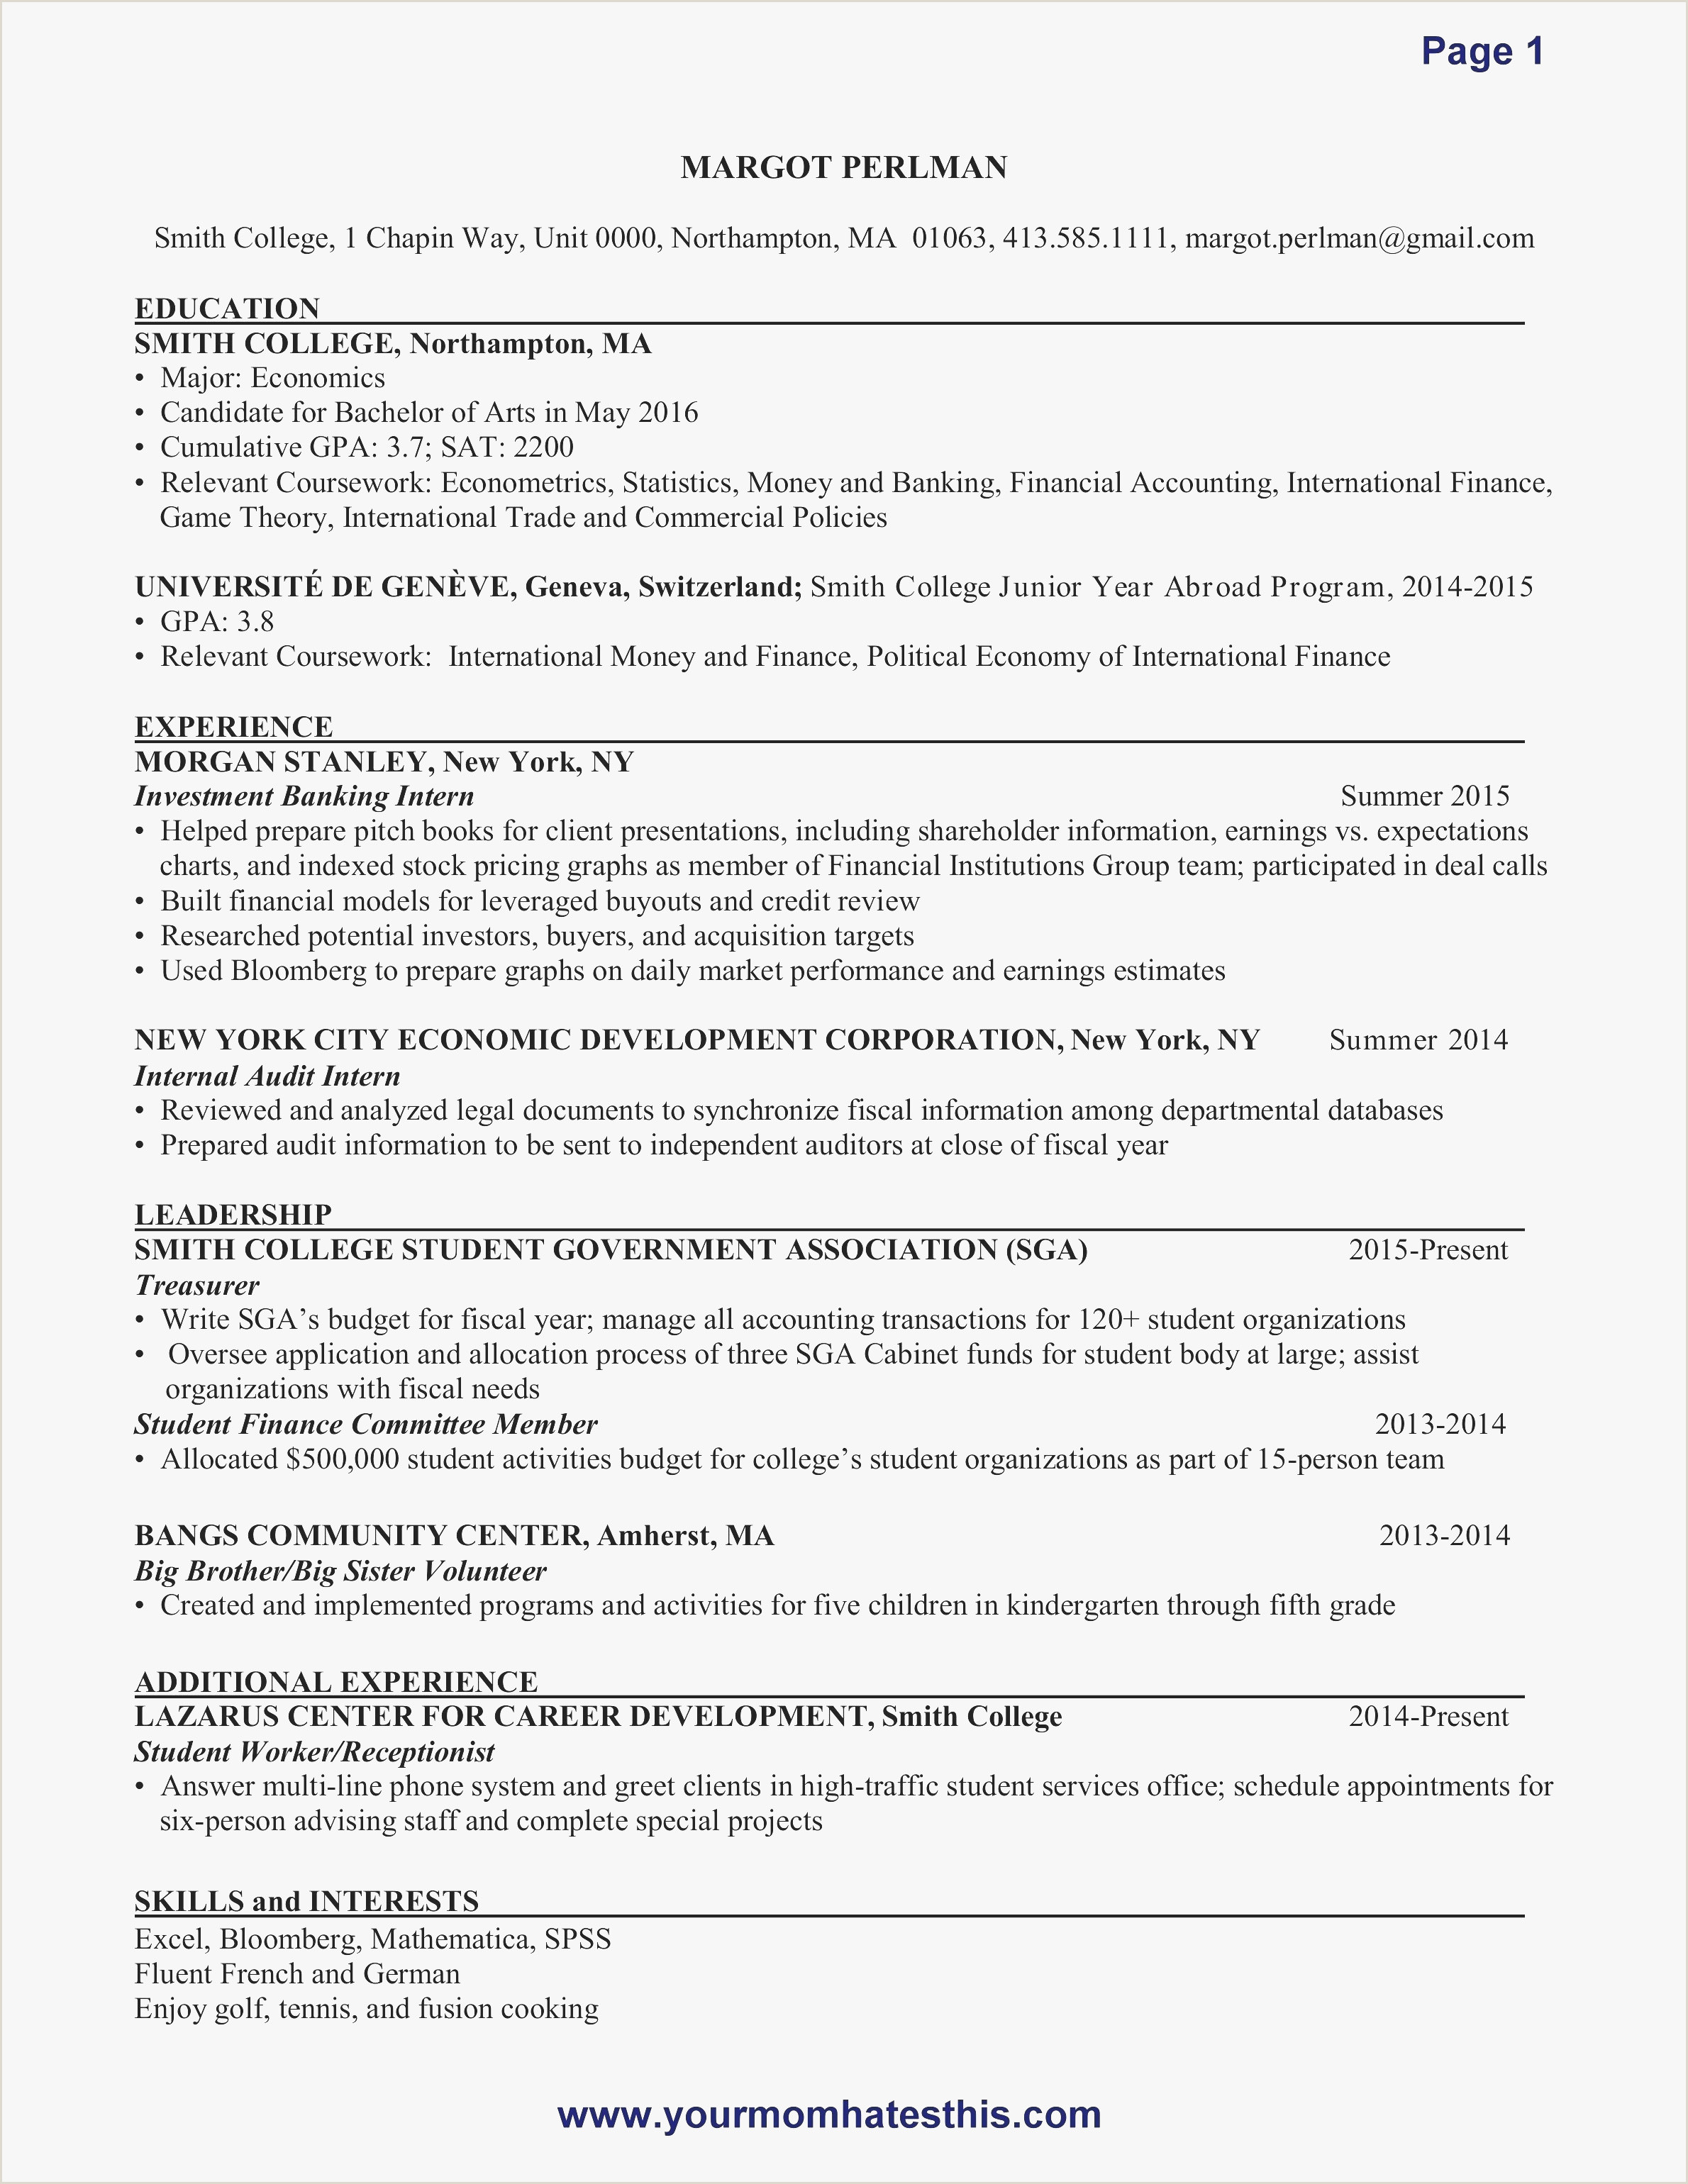 Dental assistant Student Resume Hairstyles Dental assistant Resume Inspiring Dental